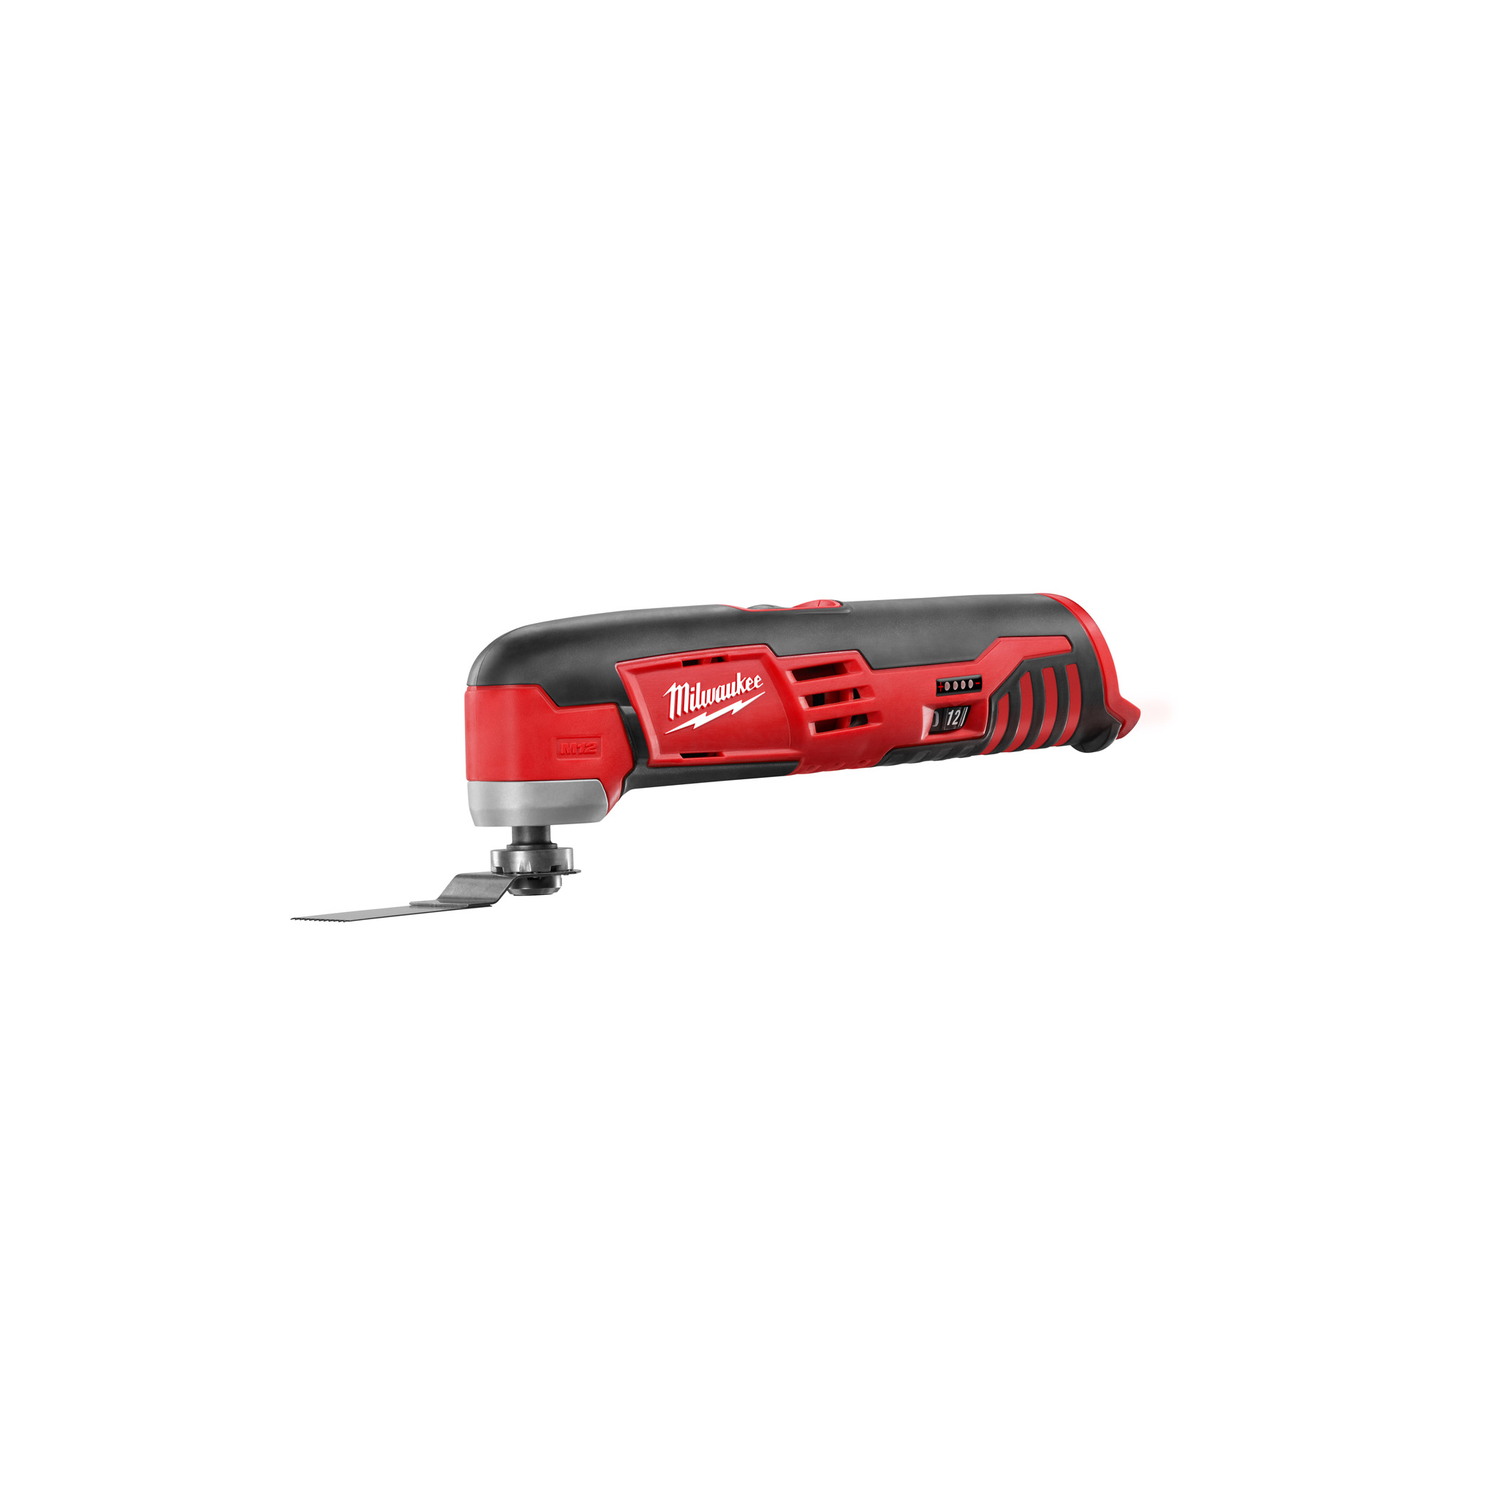 Milwaukee  M12  12 volt Cordless  Oscillating Multi-Tool  1 pc. Red  20000 opm